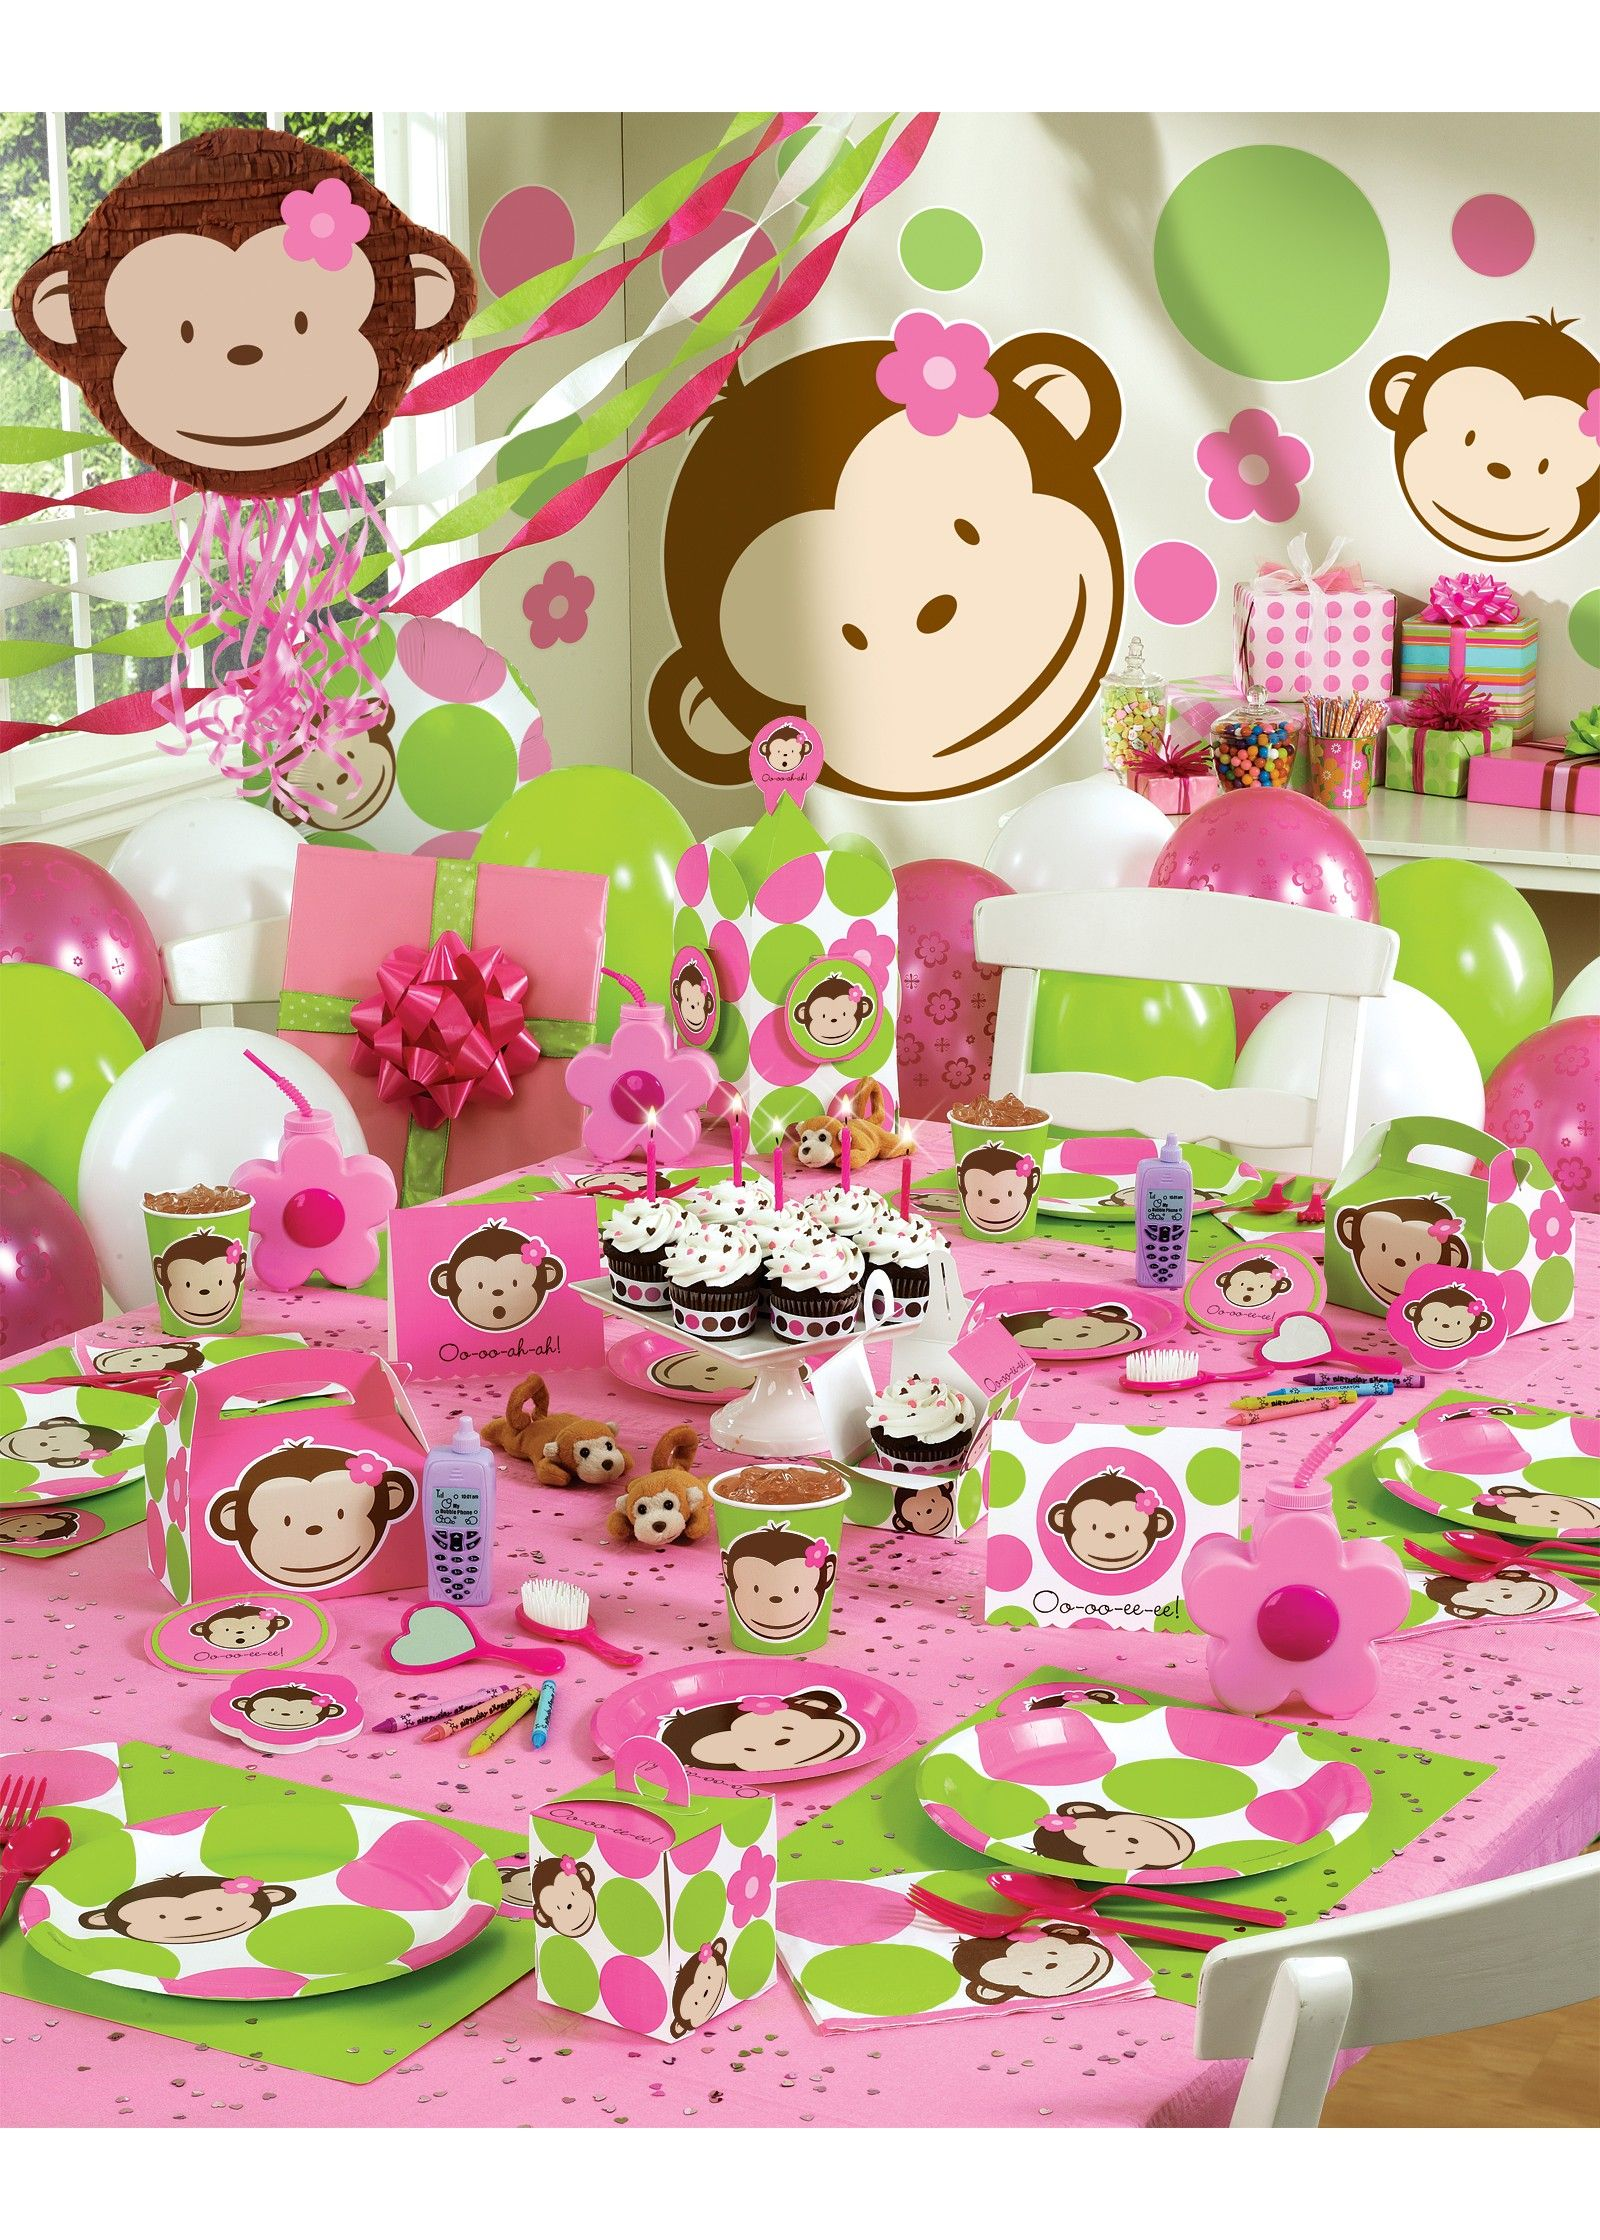 Amelias First Birthday Party Theme Cant Believe My Little Chunky